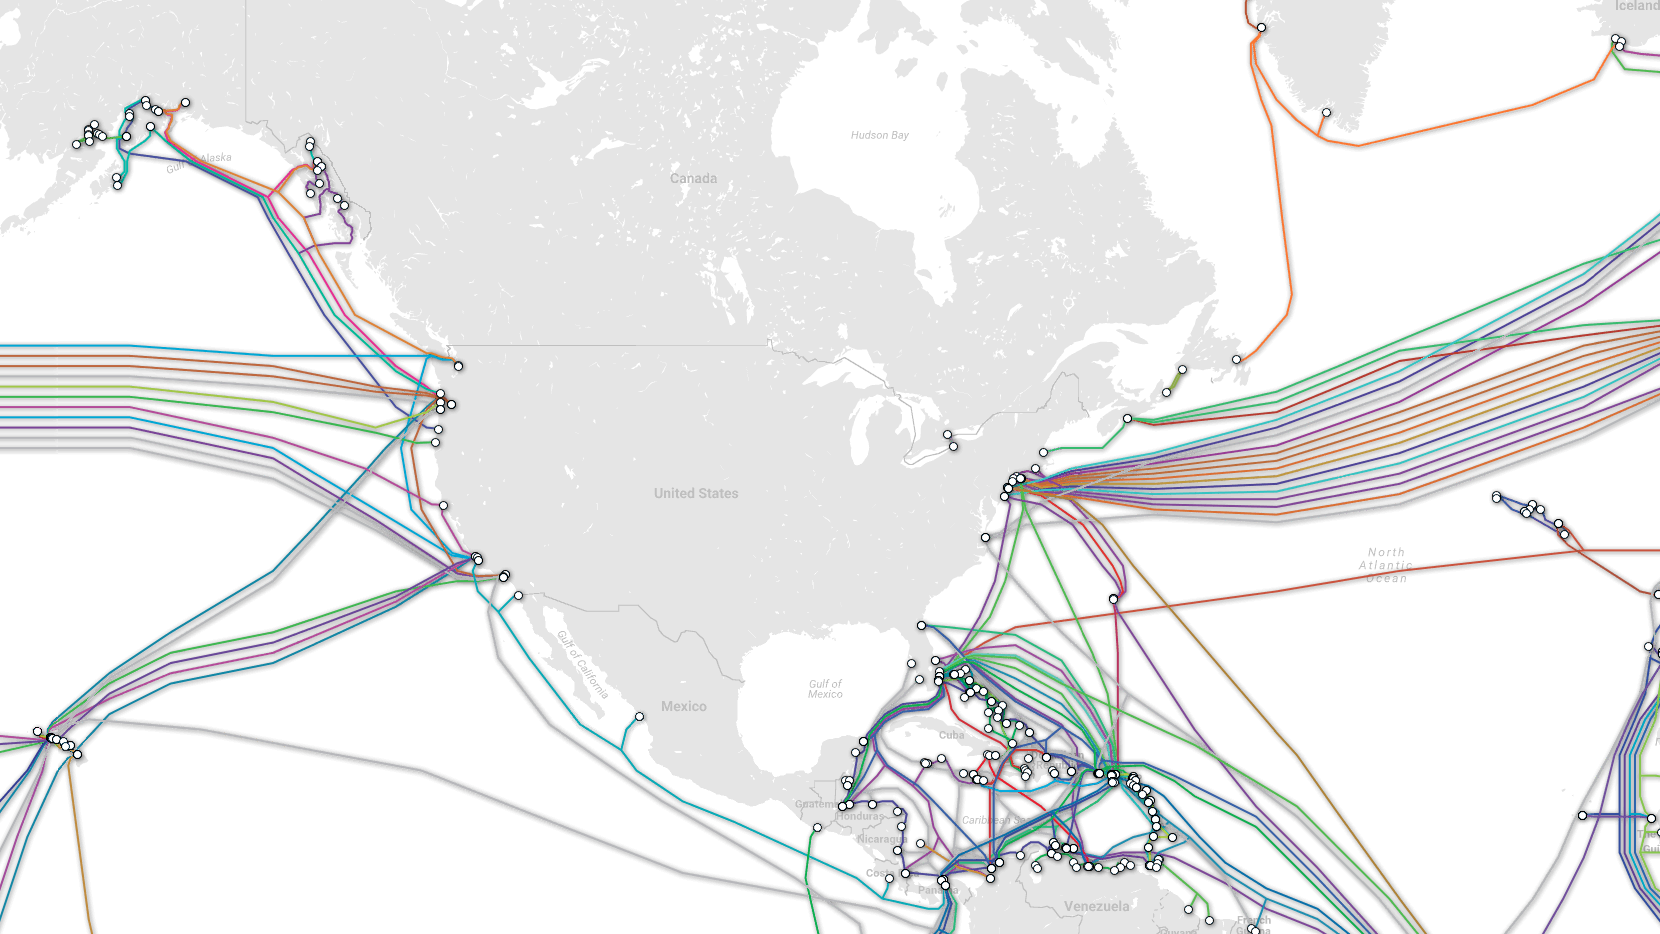 undersea internet cables map